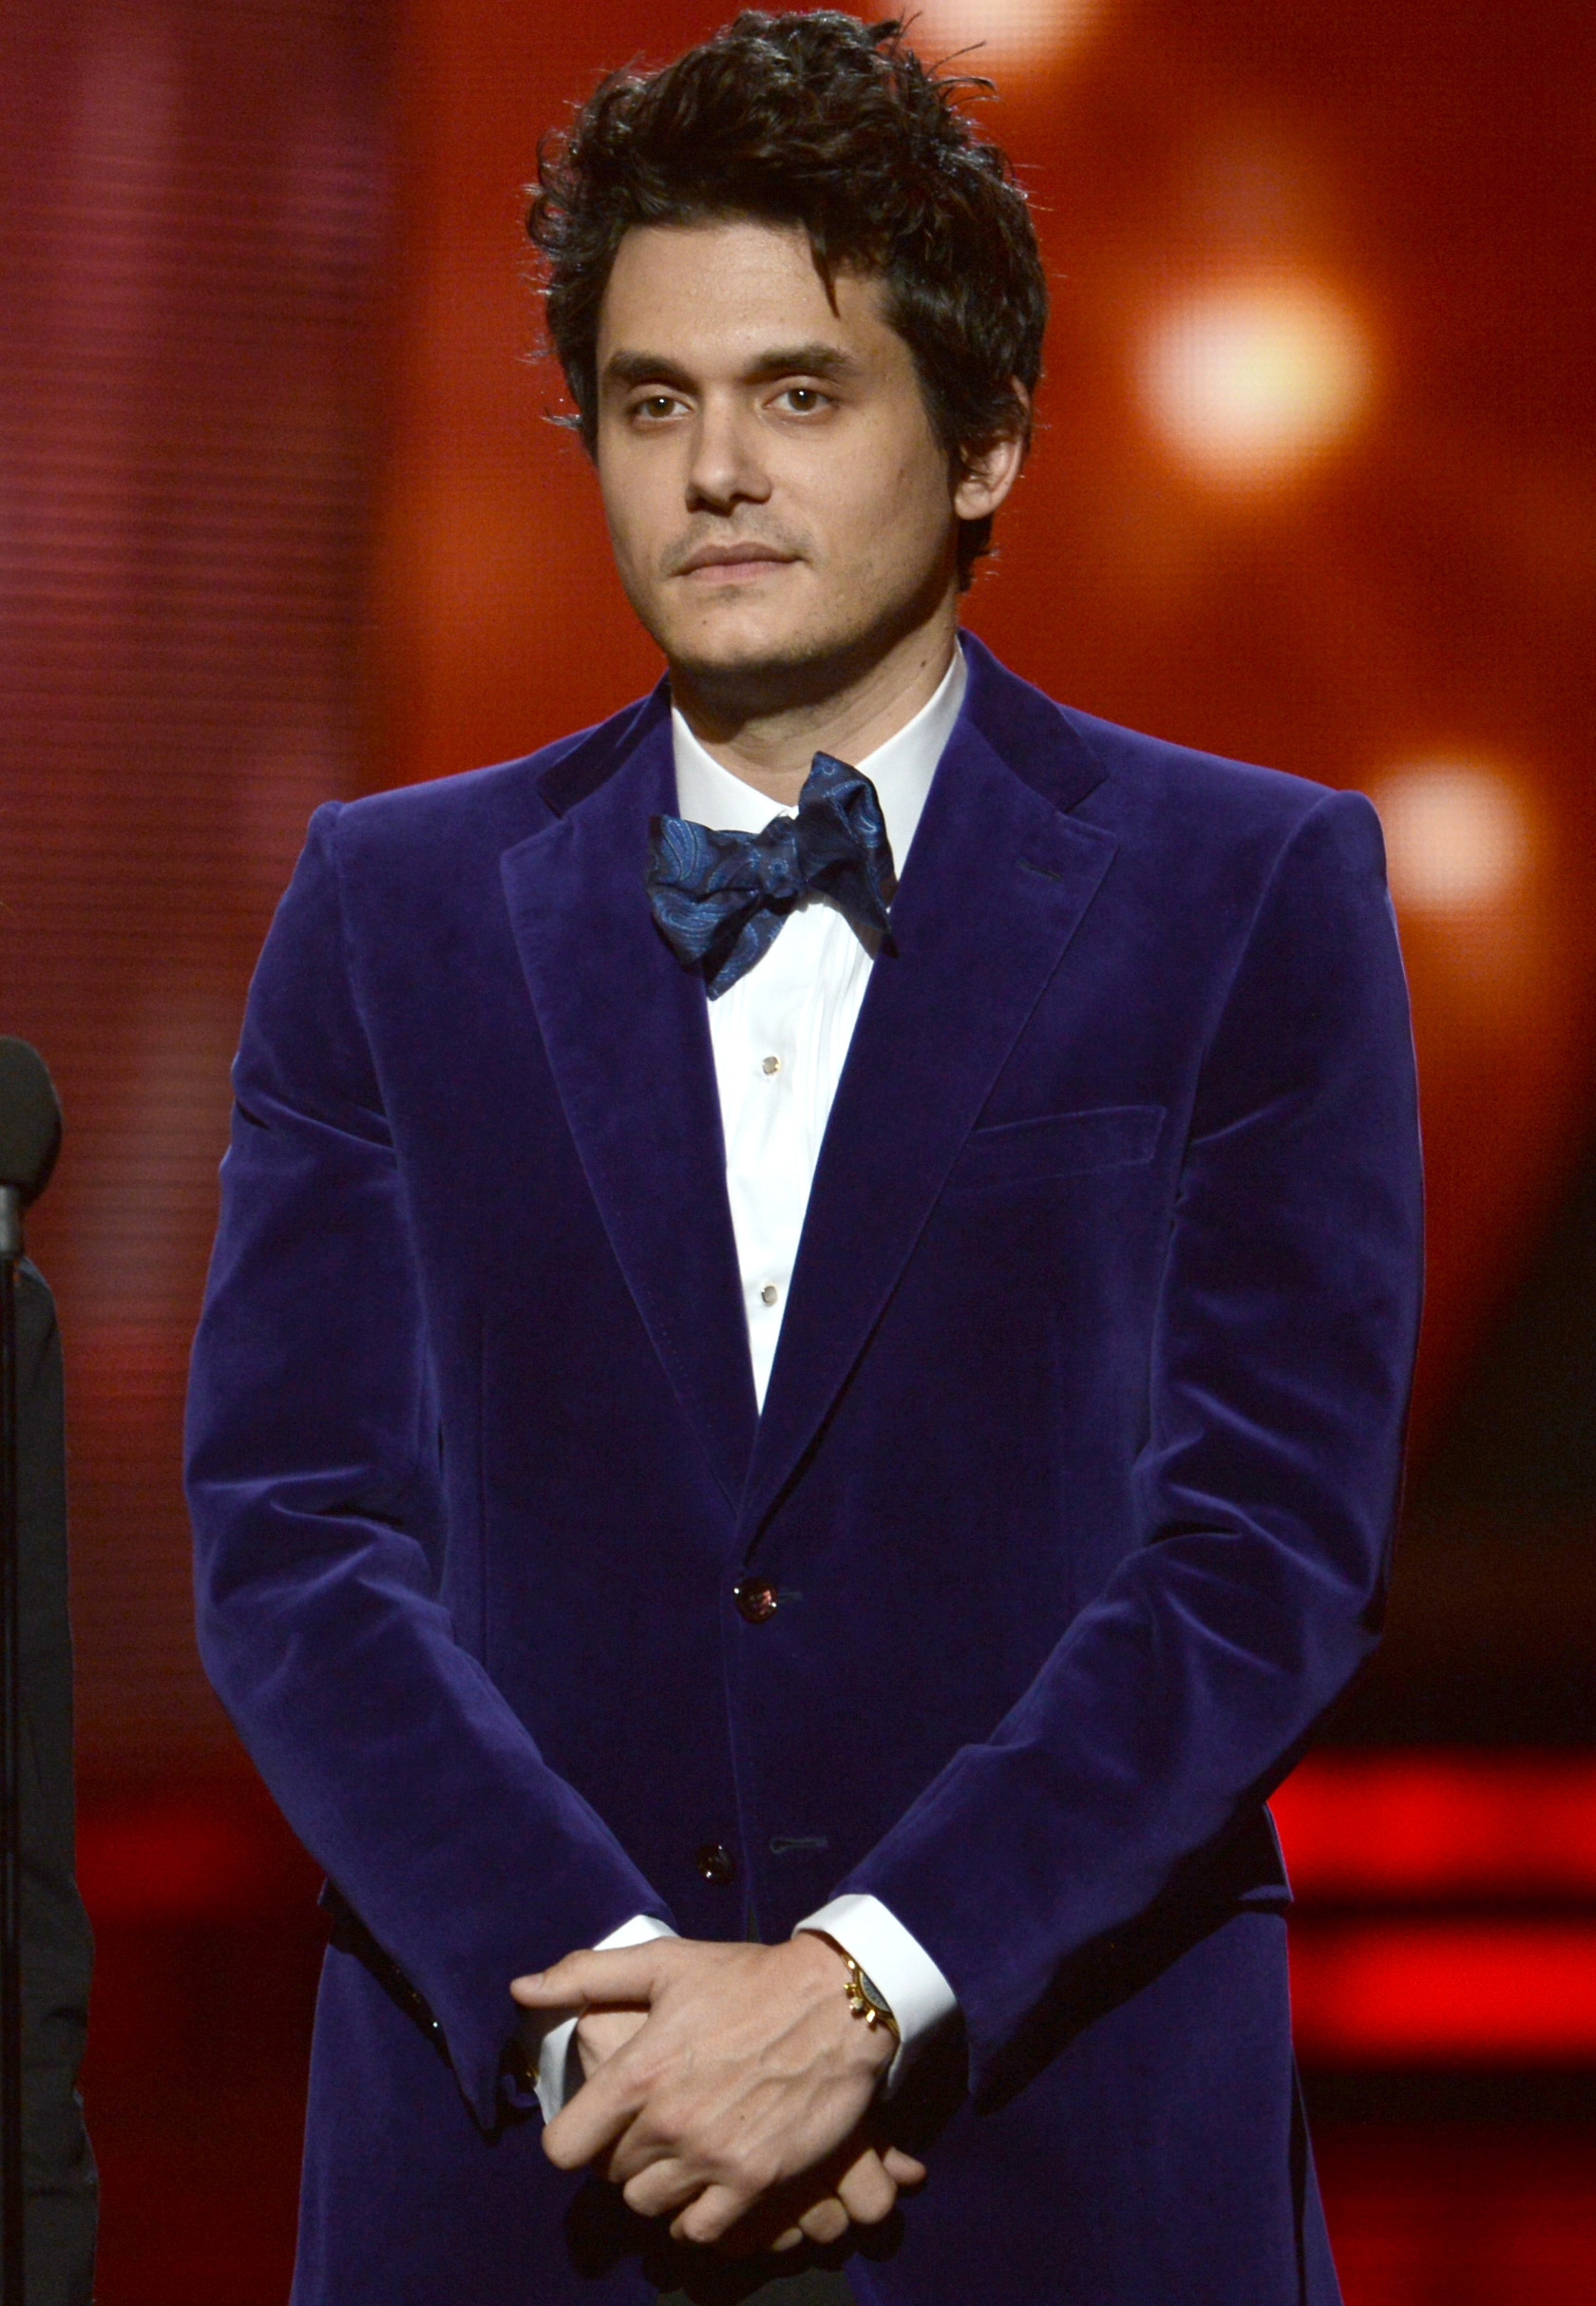 John Mayer wore a blue blazer at the Grammys.